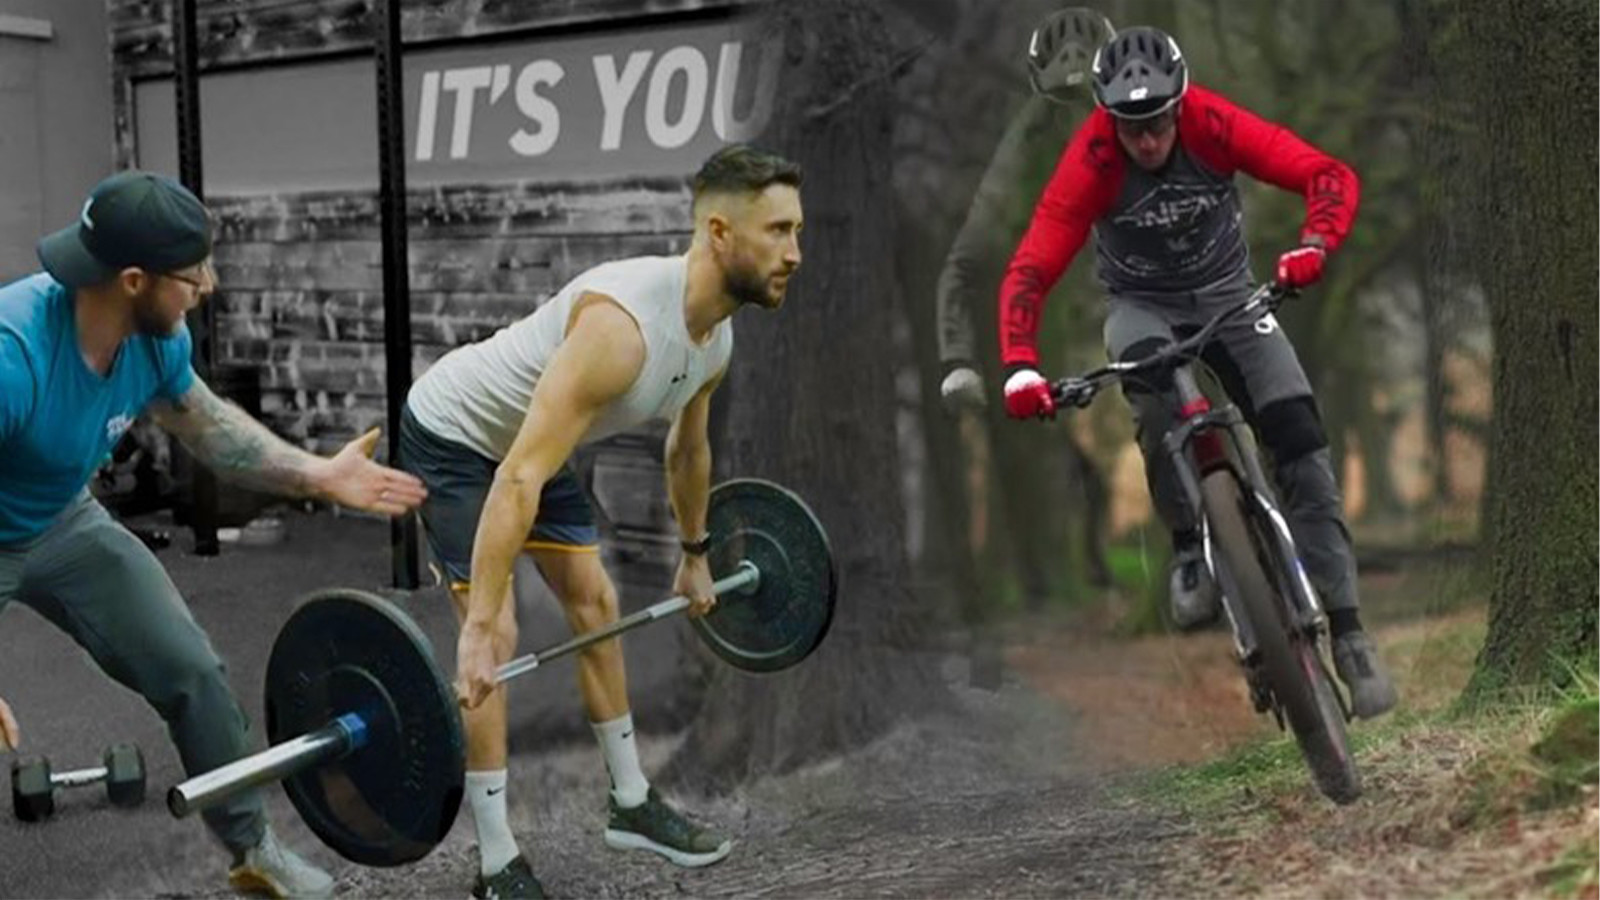 It's Grippy - Fit4Racing Puts Jack Reading and Dan Slack to the Test